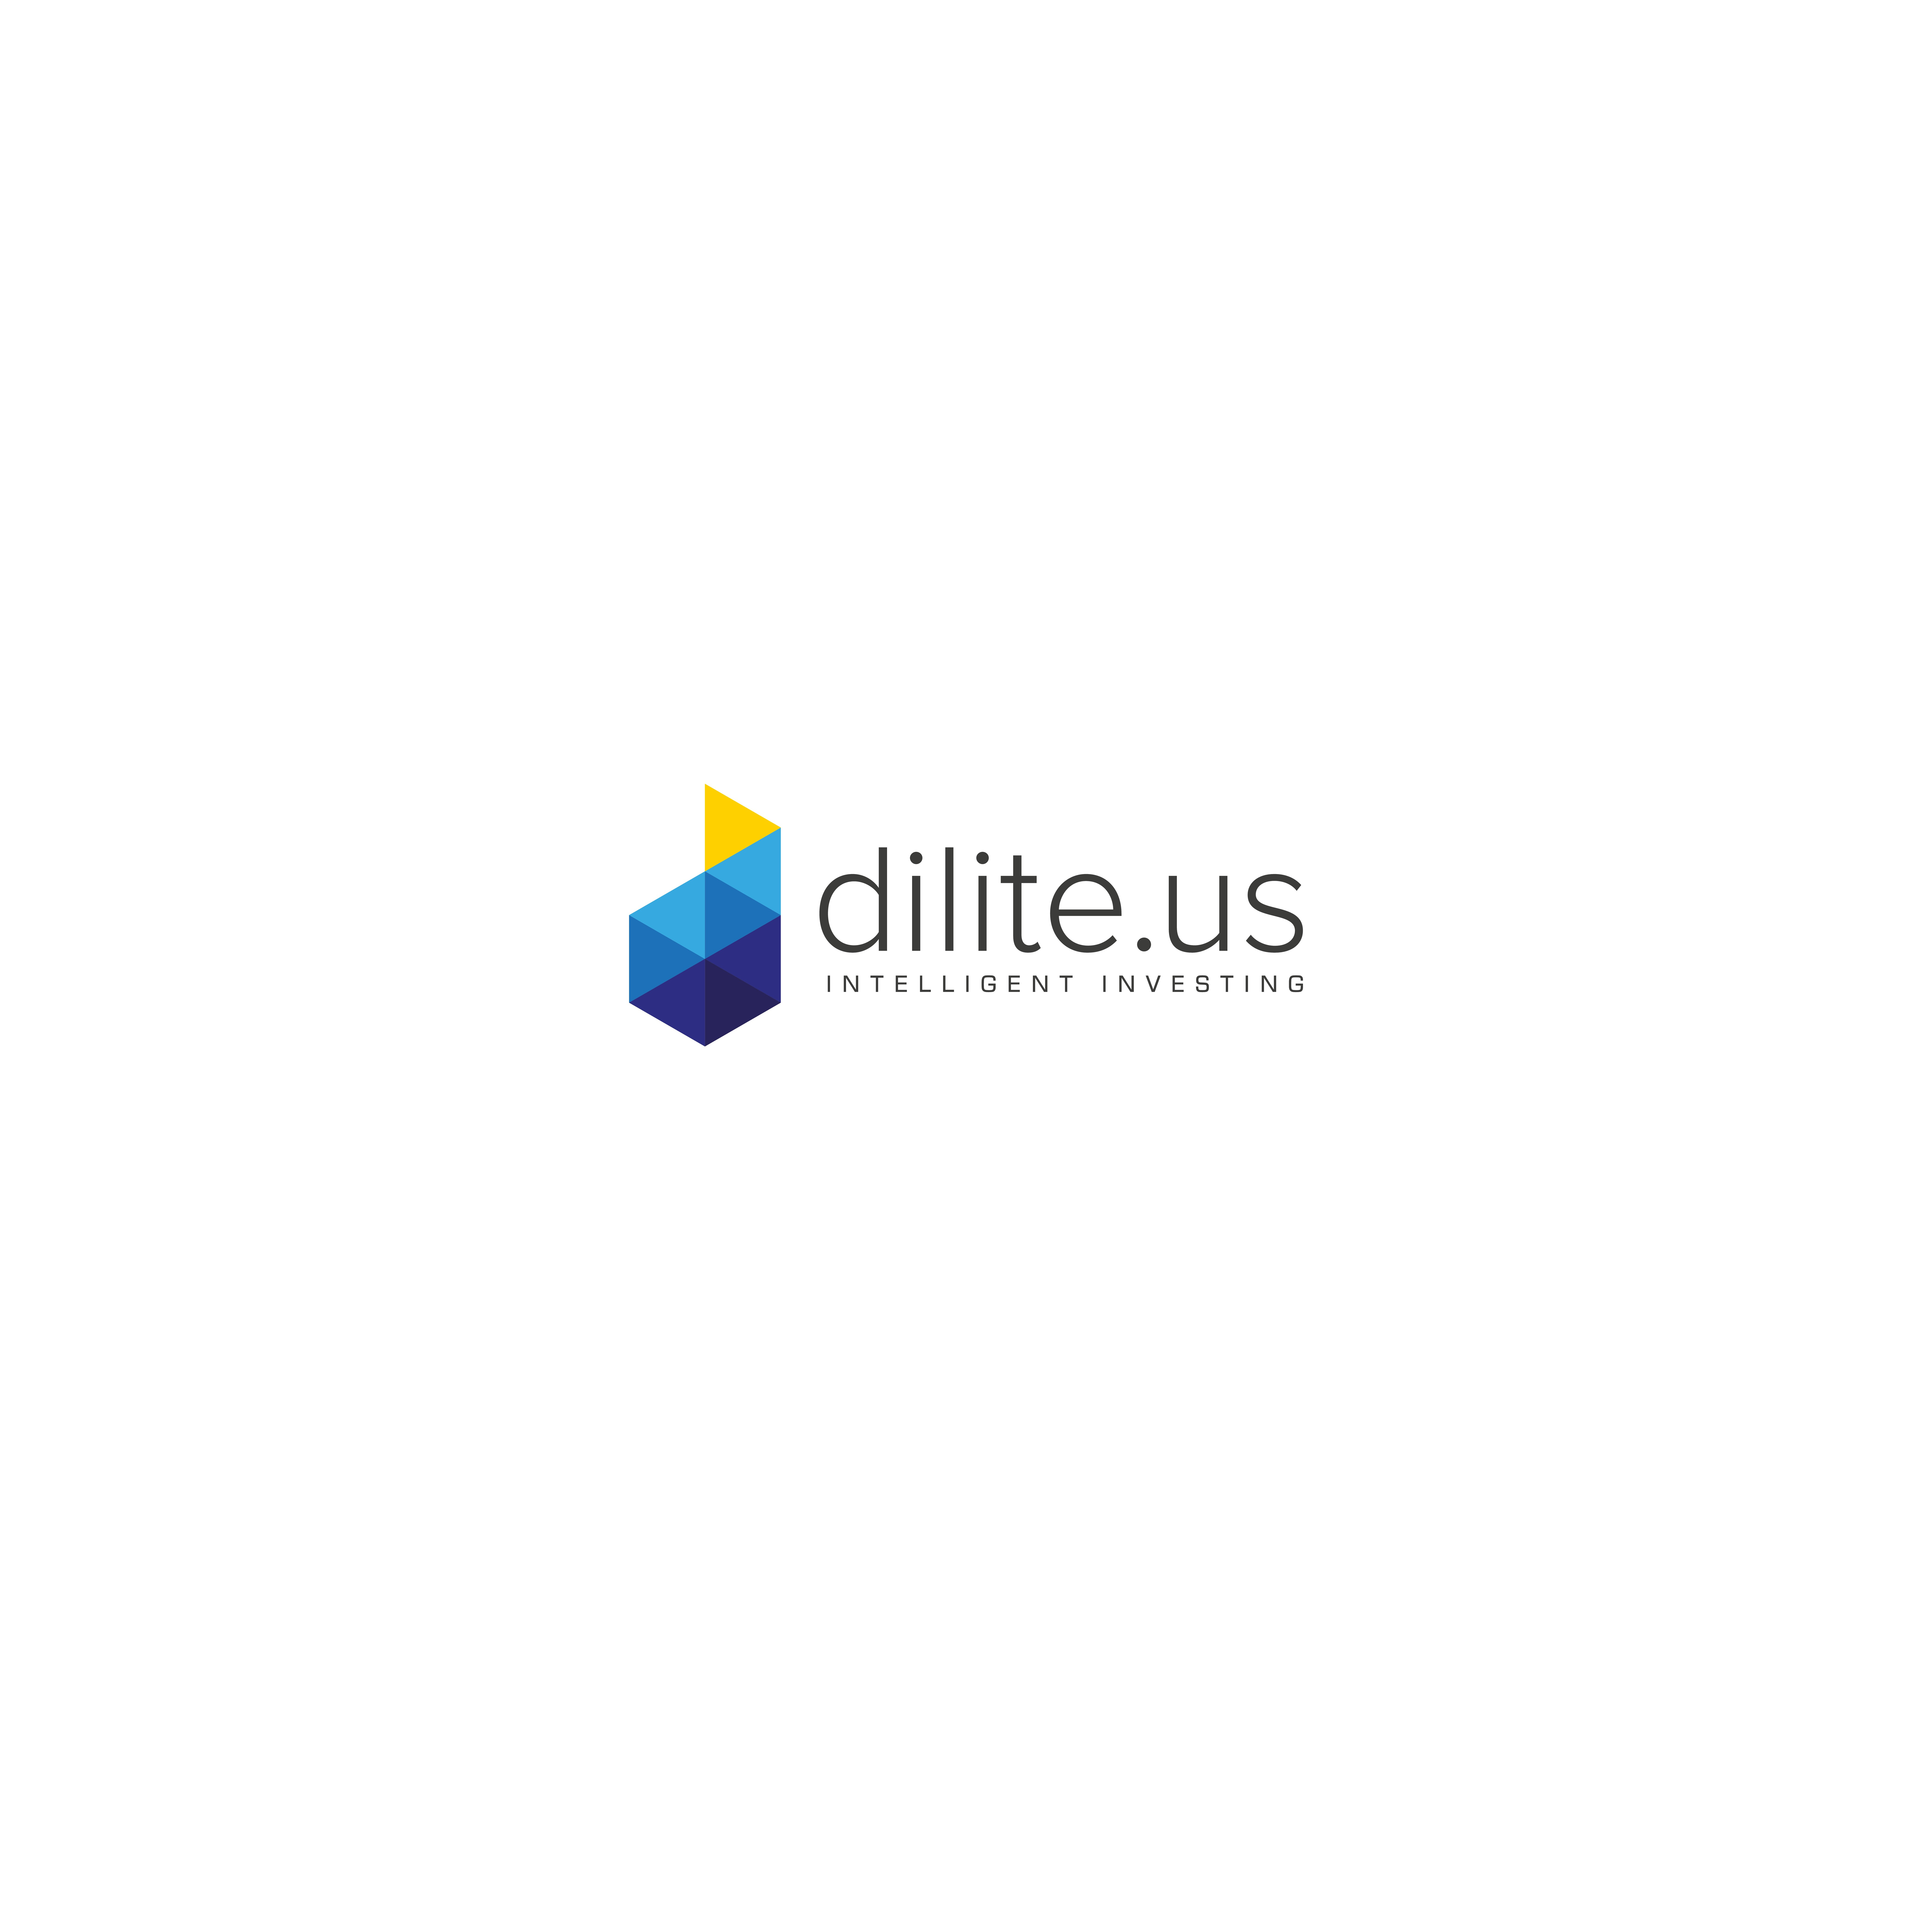 dilite.us logo and web template